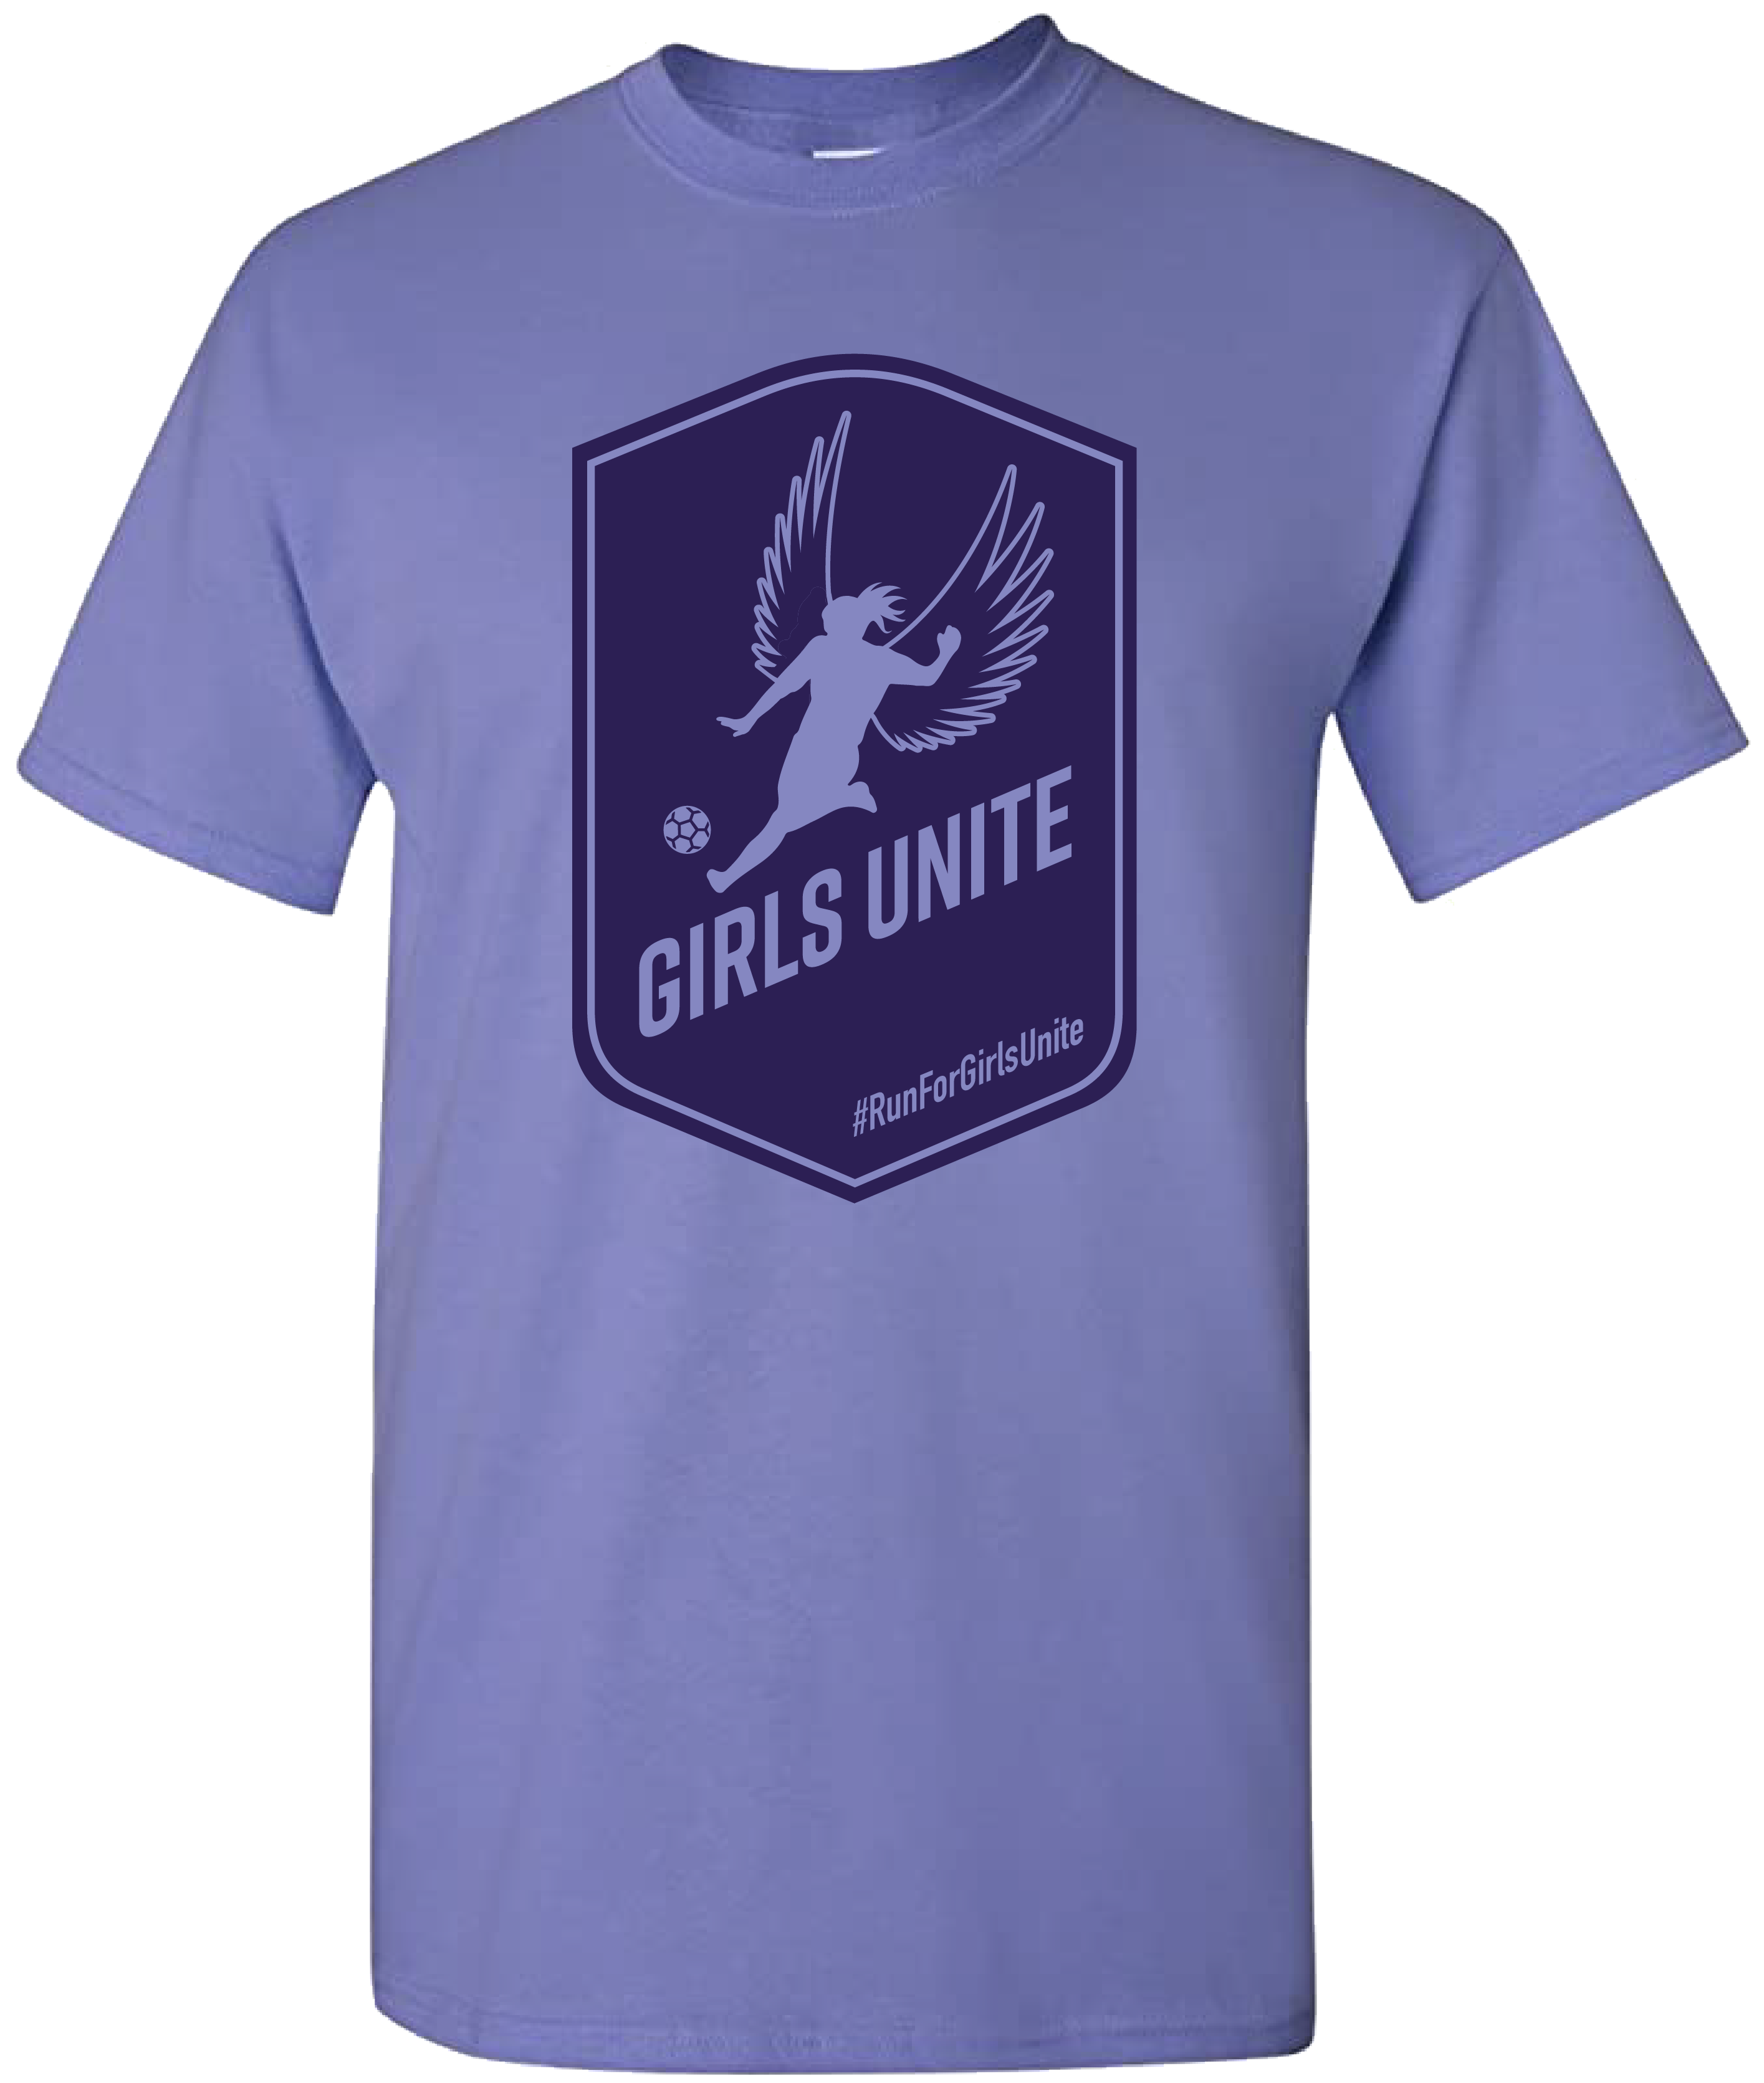 Run For Girls Unite shirt